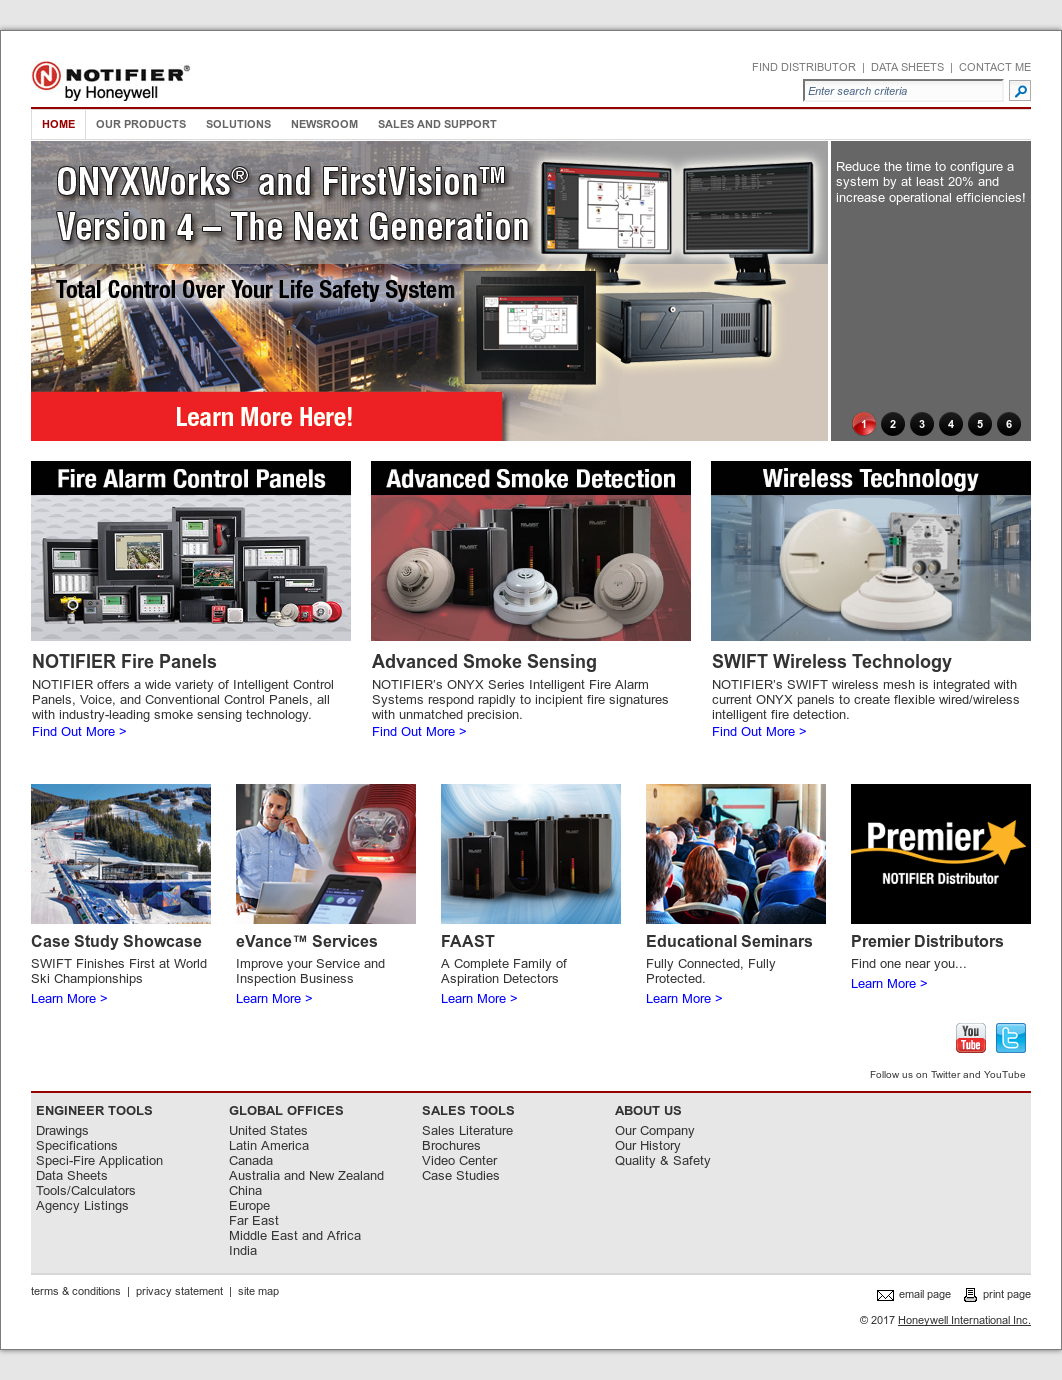 Honeywell Fire Systems Competitors, Revenue and Employees - Owler